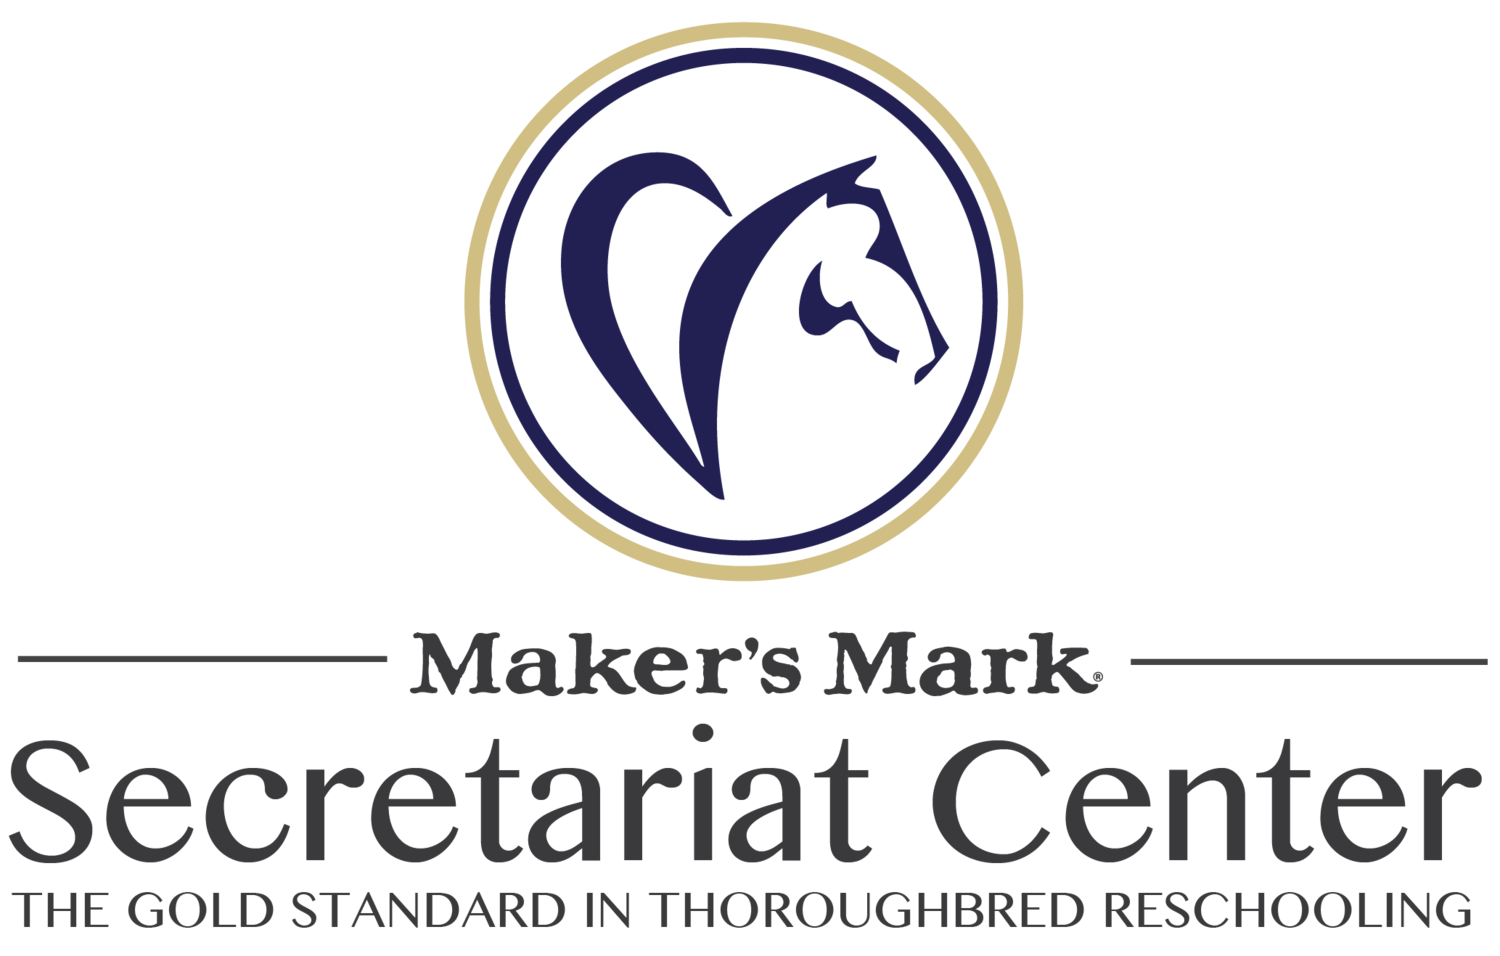 Maker's Mark Secretariat Center.